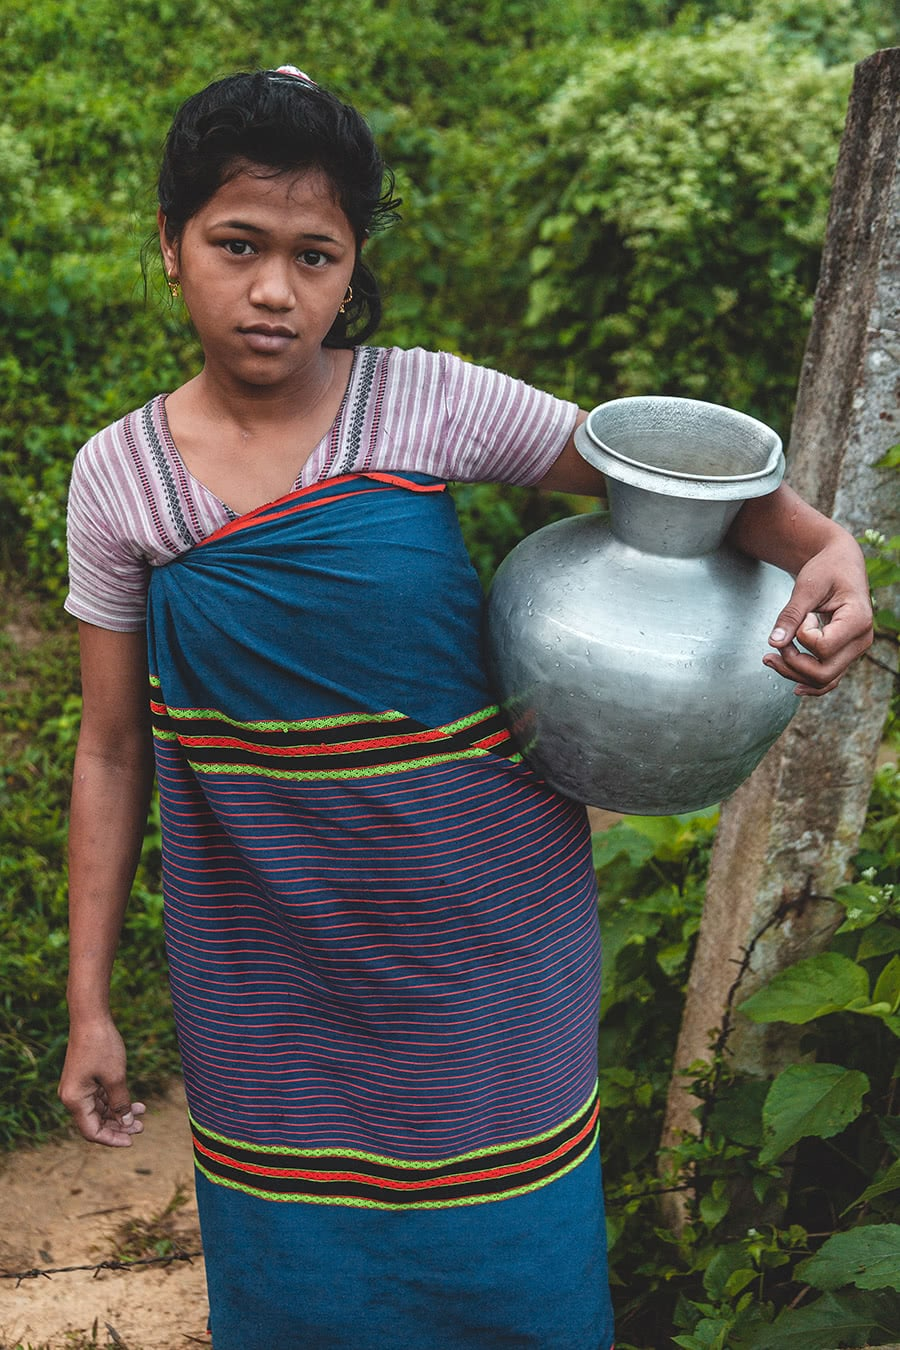 A girl fetches water from a well near her home in Bandarban, Bangladesh.